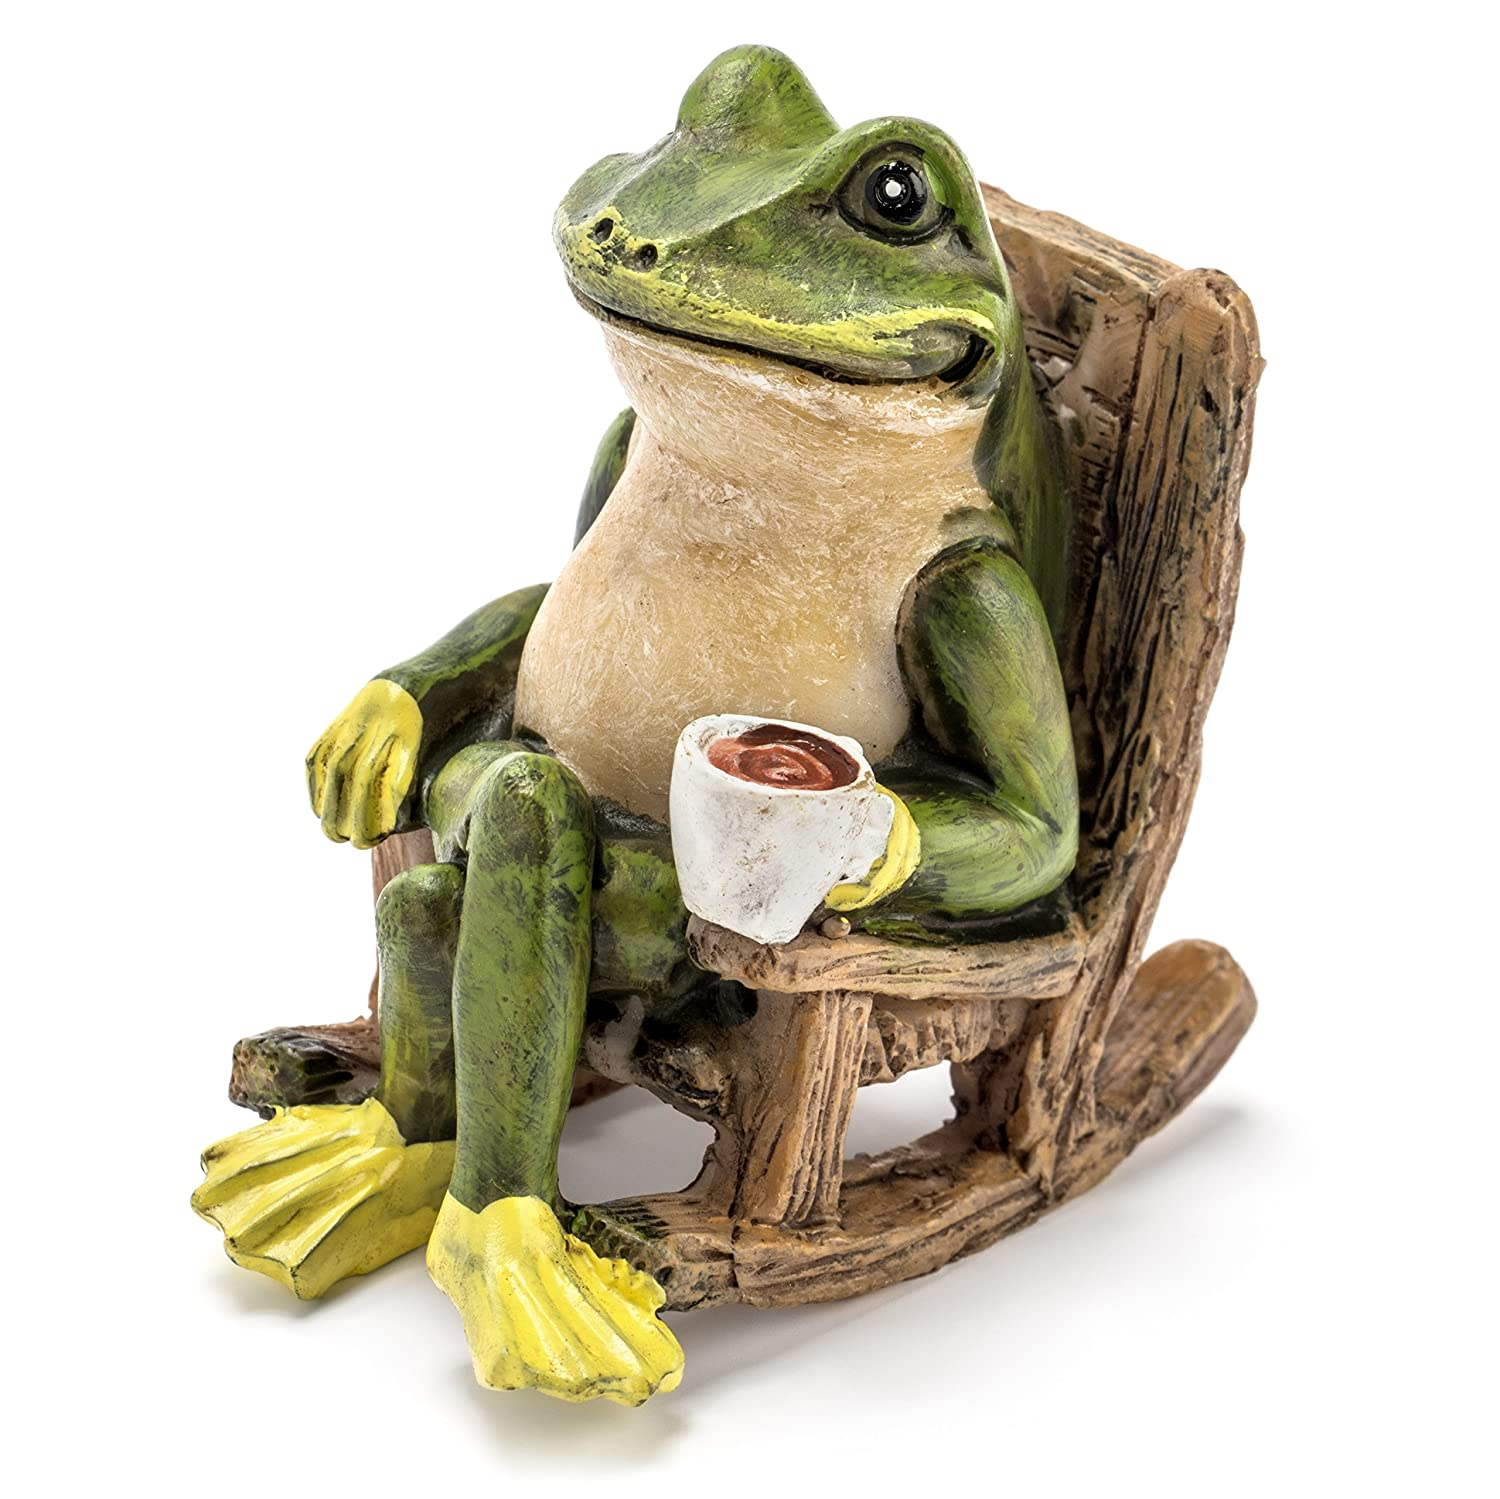 "Miniature Frog Garden Statue - 2"" Tall - Mini Outdoor Accessory Figurine for Fairy Garden"